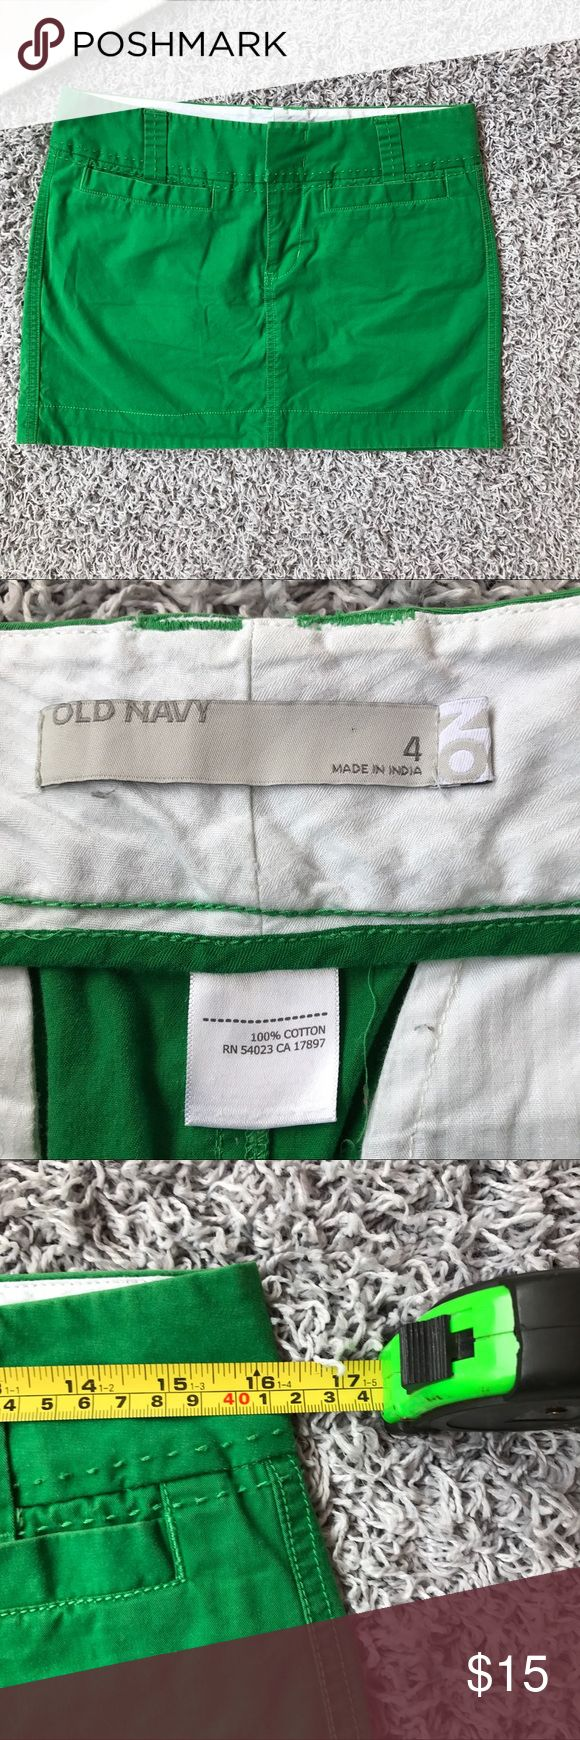 Old Navy Skirt Size 4 Green Short Mini This car is in great condition and has no flaws. It is a size 4 and the measurements are shown in pictures. Feel free to bundle and save! Old Navy Skirts Mini